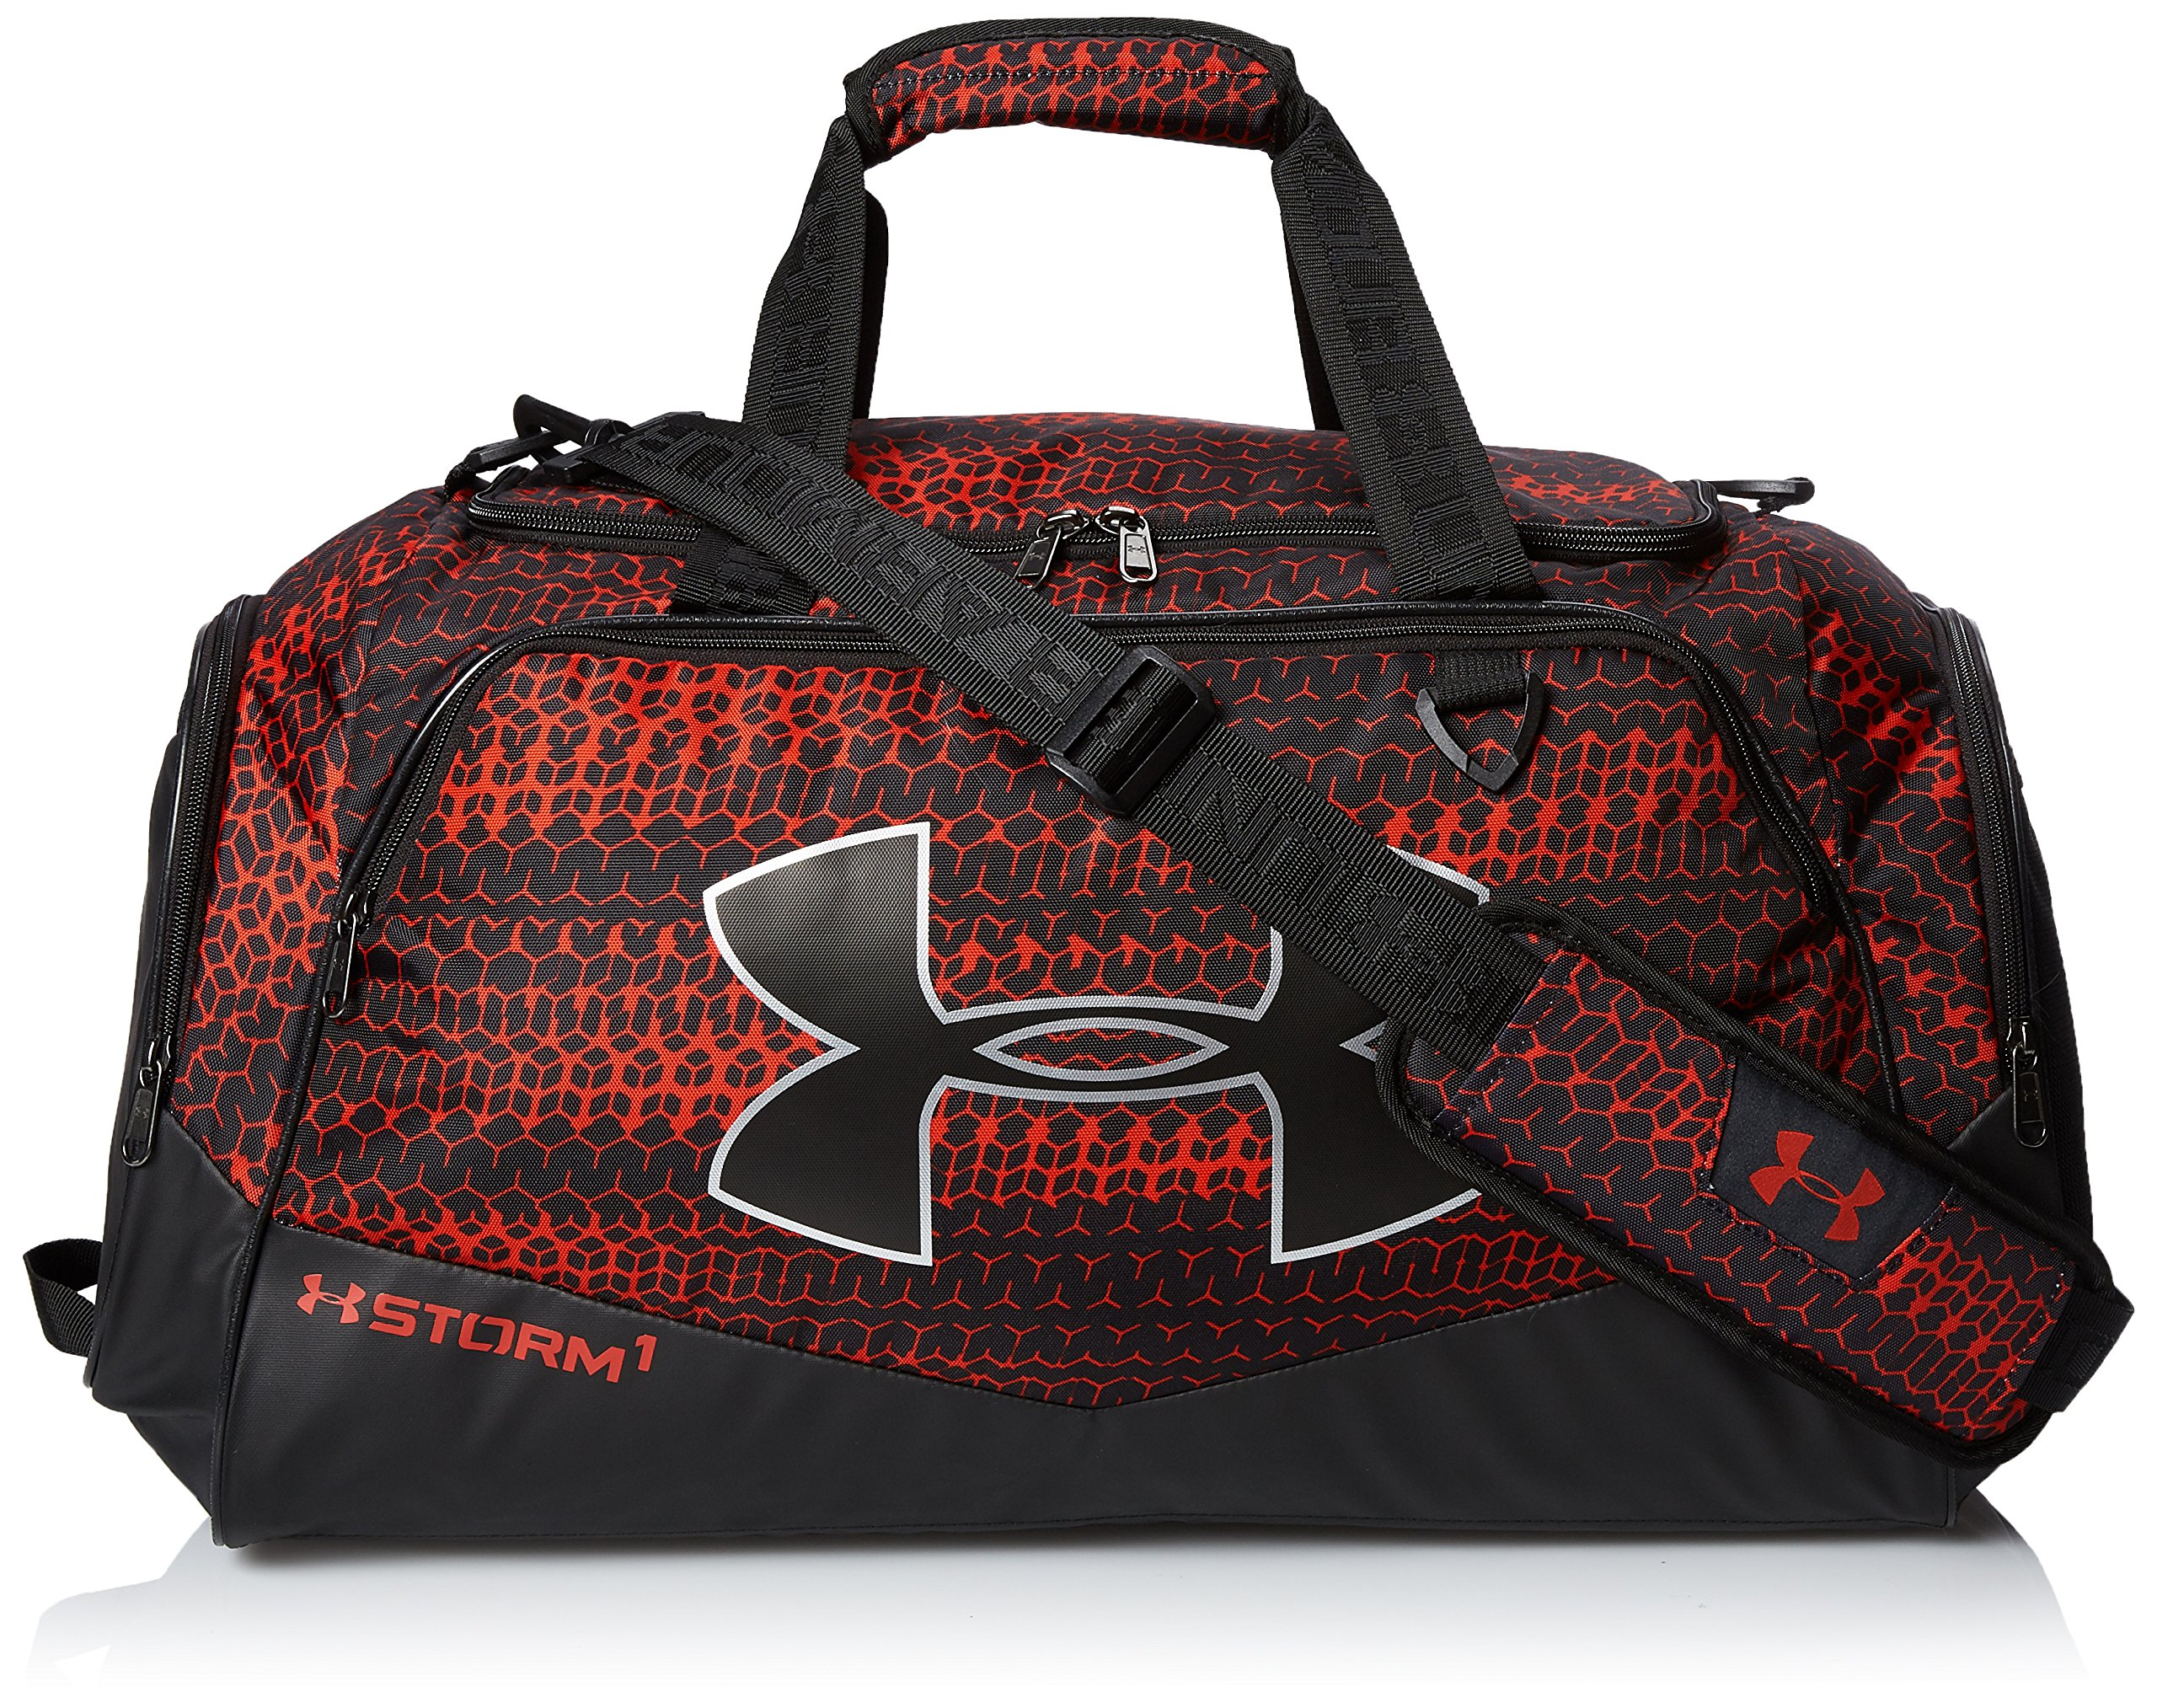 Under Armour Undeniable Duffle 2.0 Gym Bag, Red /Black, Medium by Under Armour